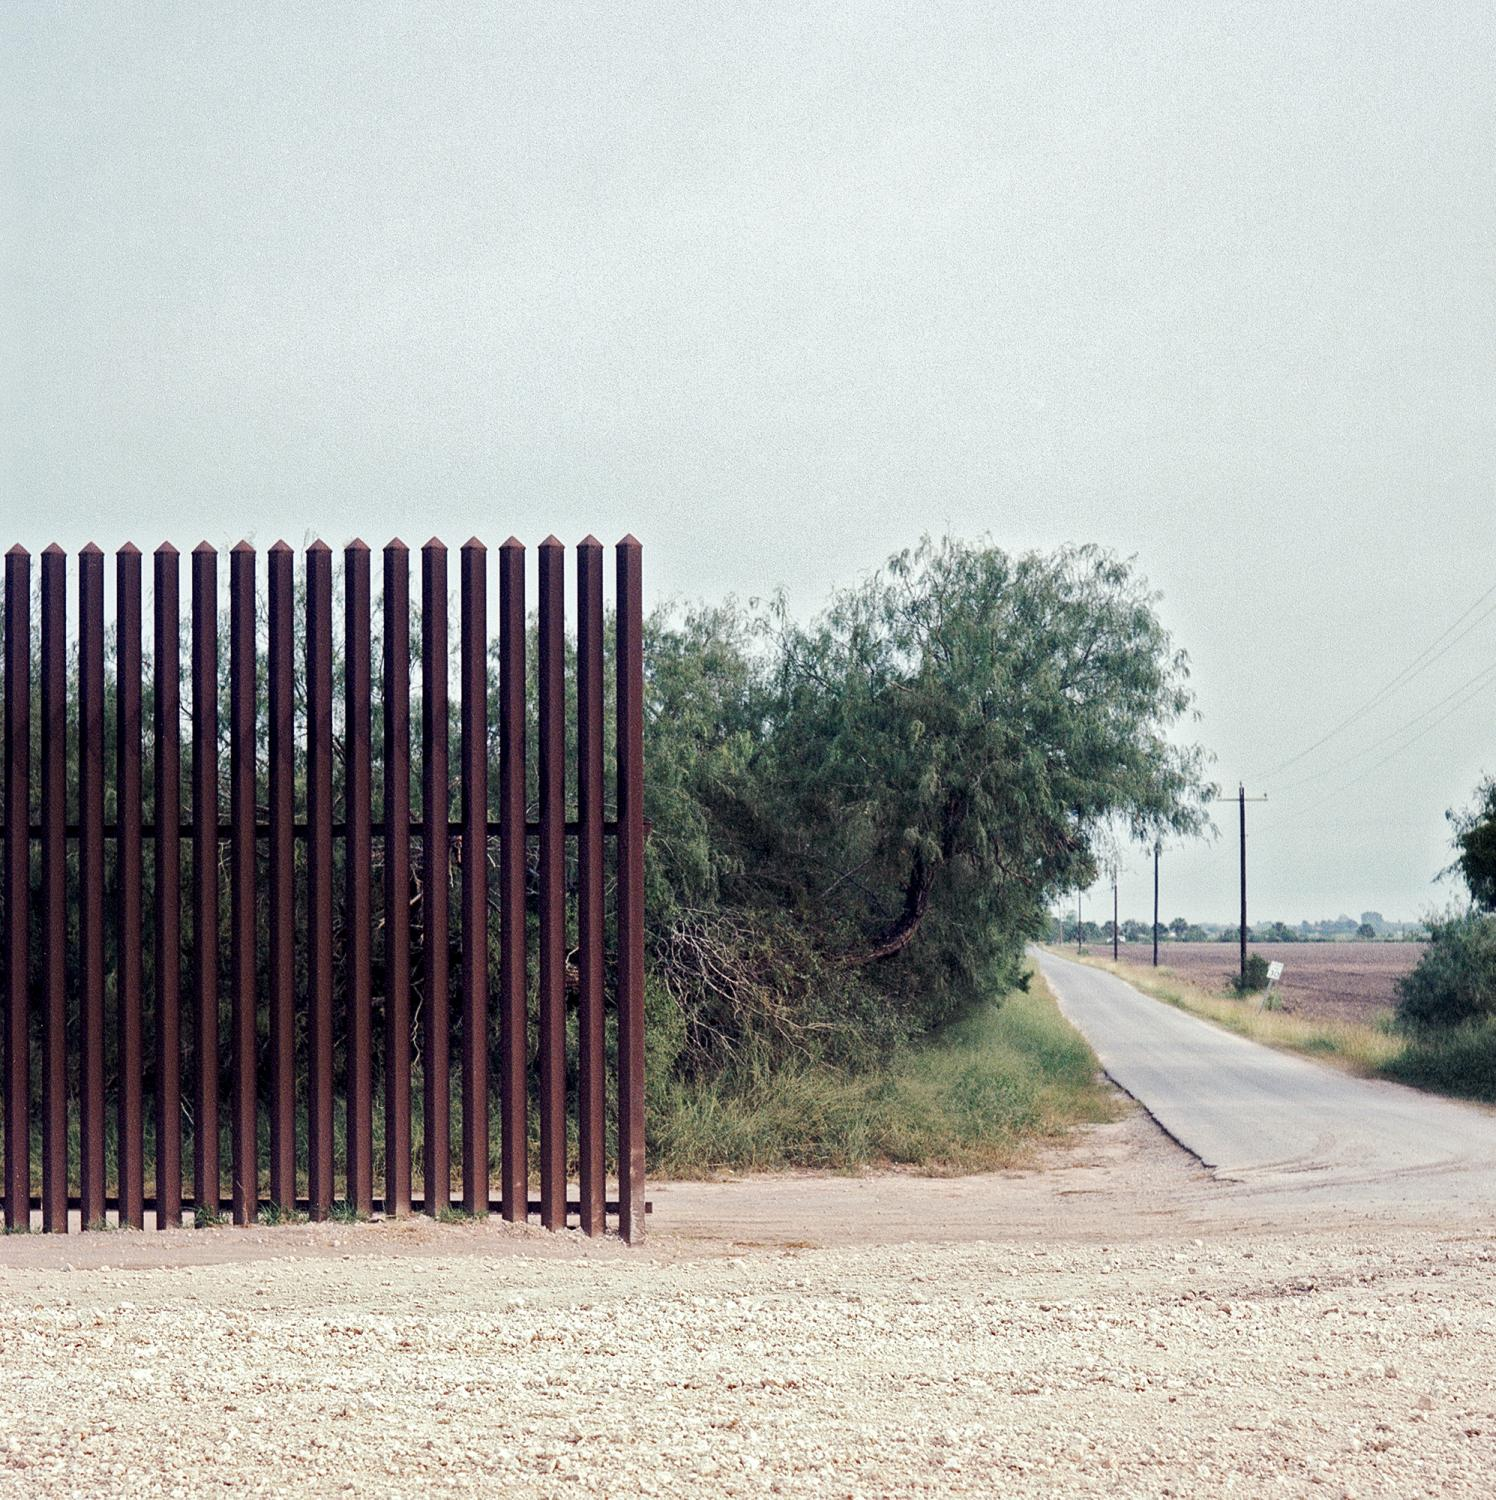 Brownsville, TX - OCTOBER 16, 2020: The U.S.-Mexico border fence stops at a road. The fence is located less than a mile away from the Rio Grande.